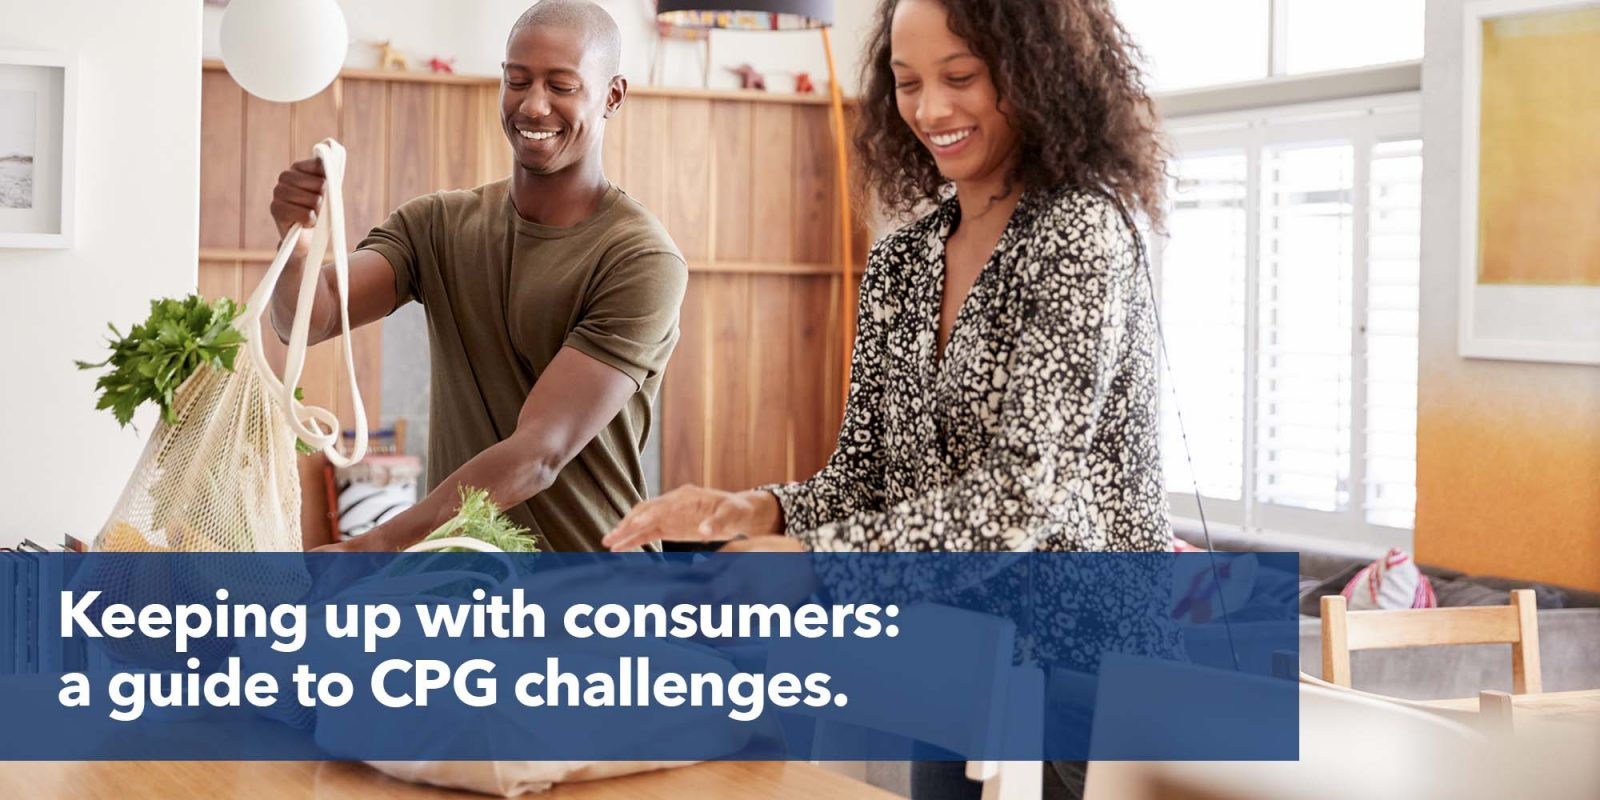 Keeping up with consumers: a guide to CPG challenges.